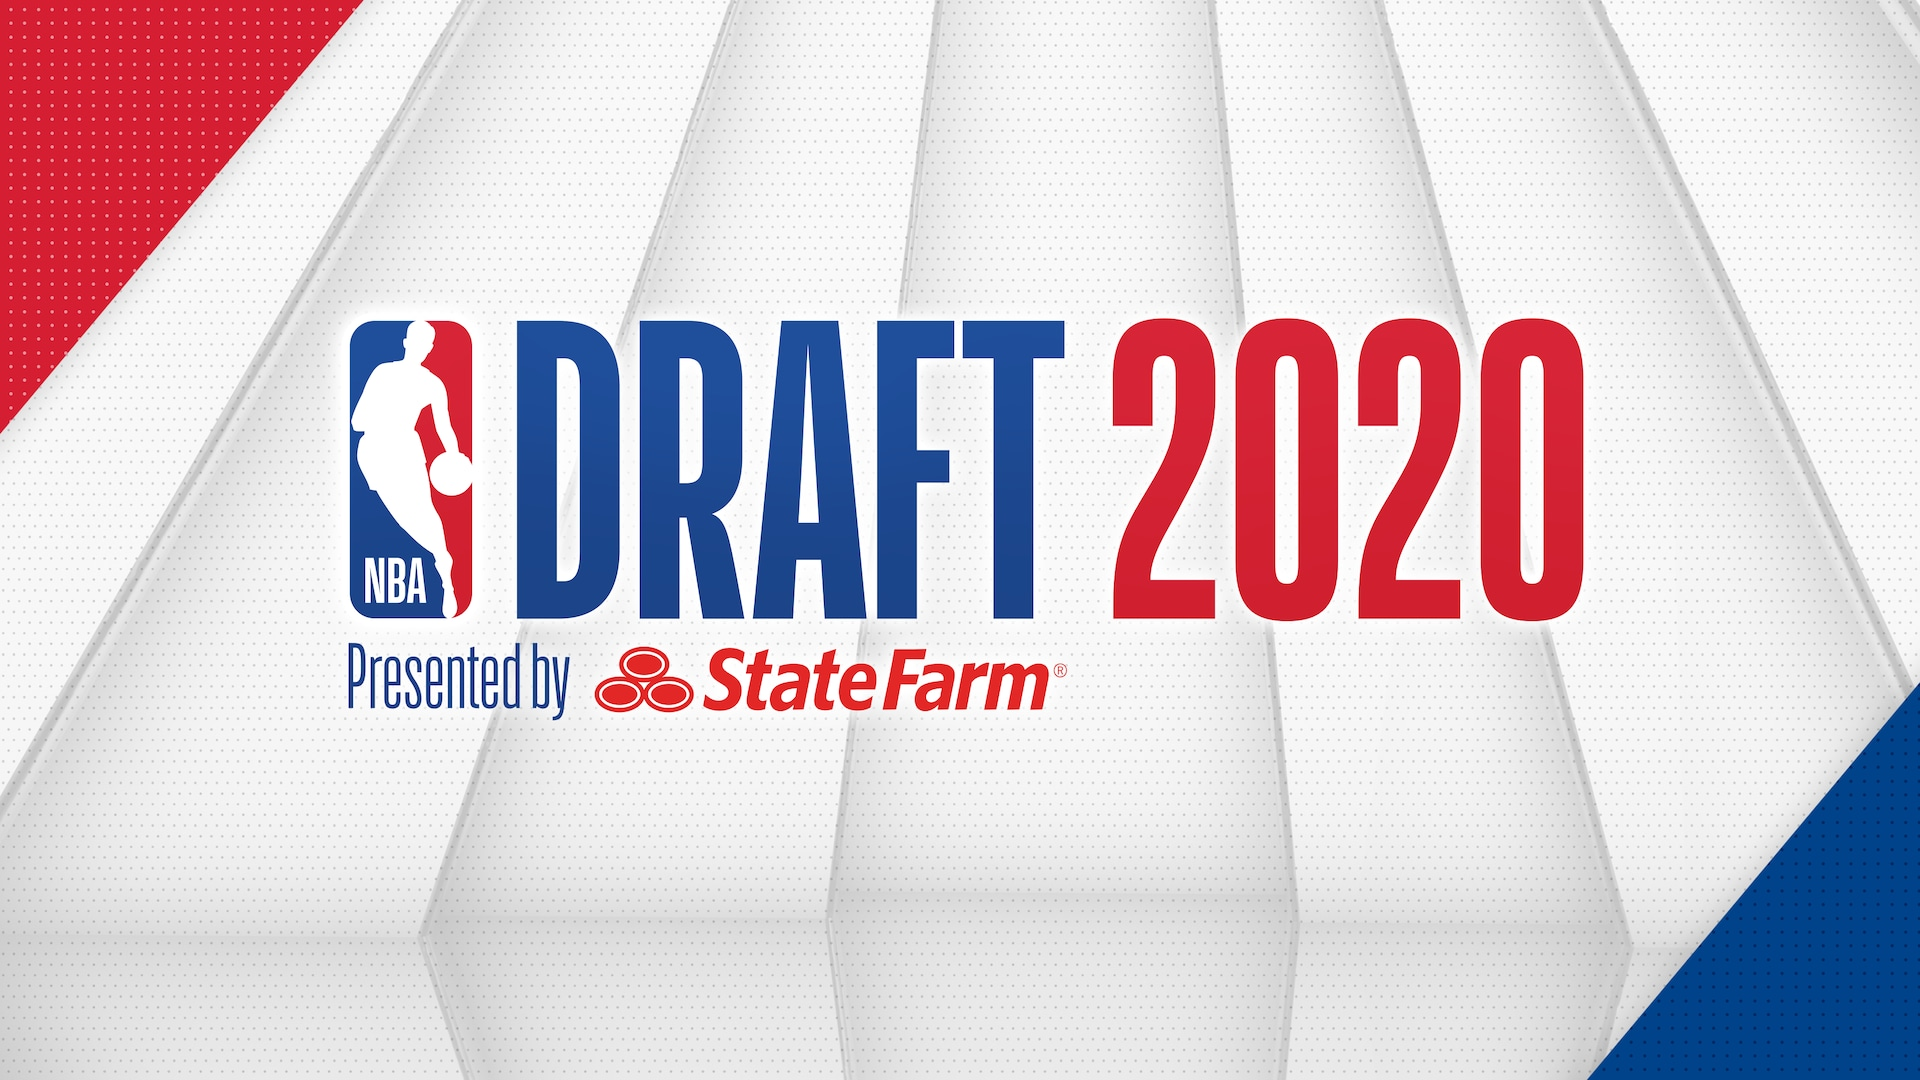 ESPN to host virtual 2020 NBA Draft presented by State Farm